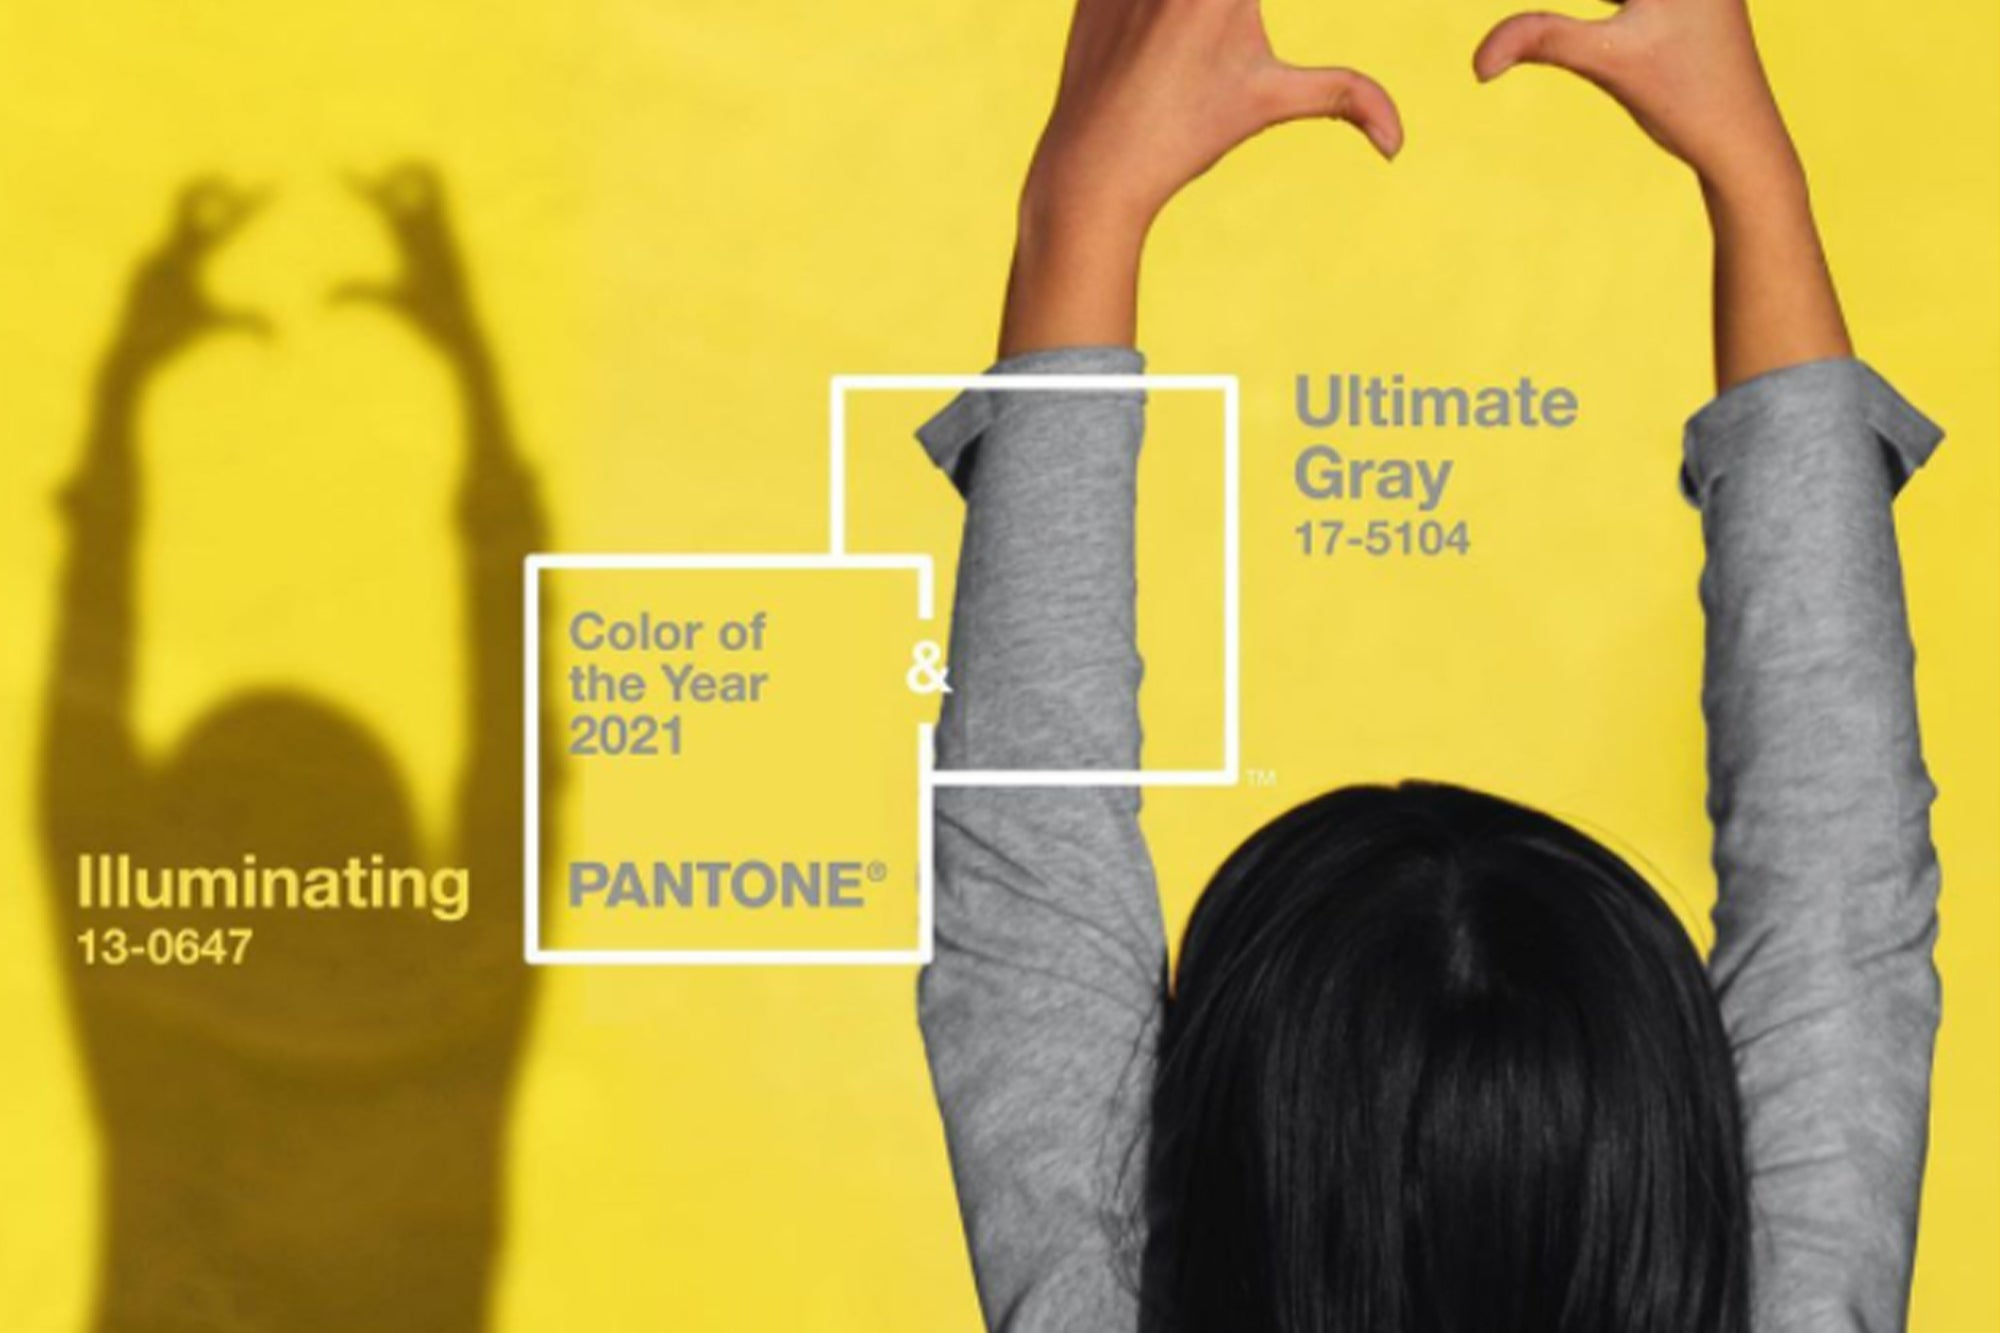 These are the two colors of the year 2021 according to the Pantone Institute